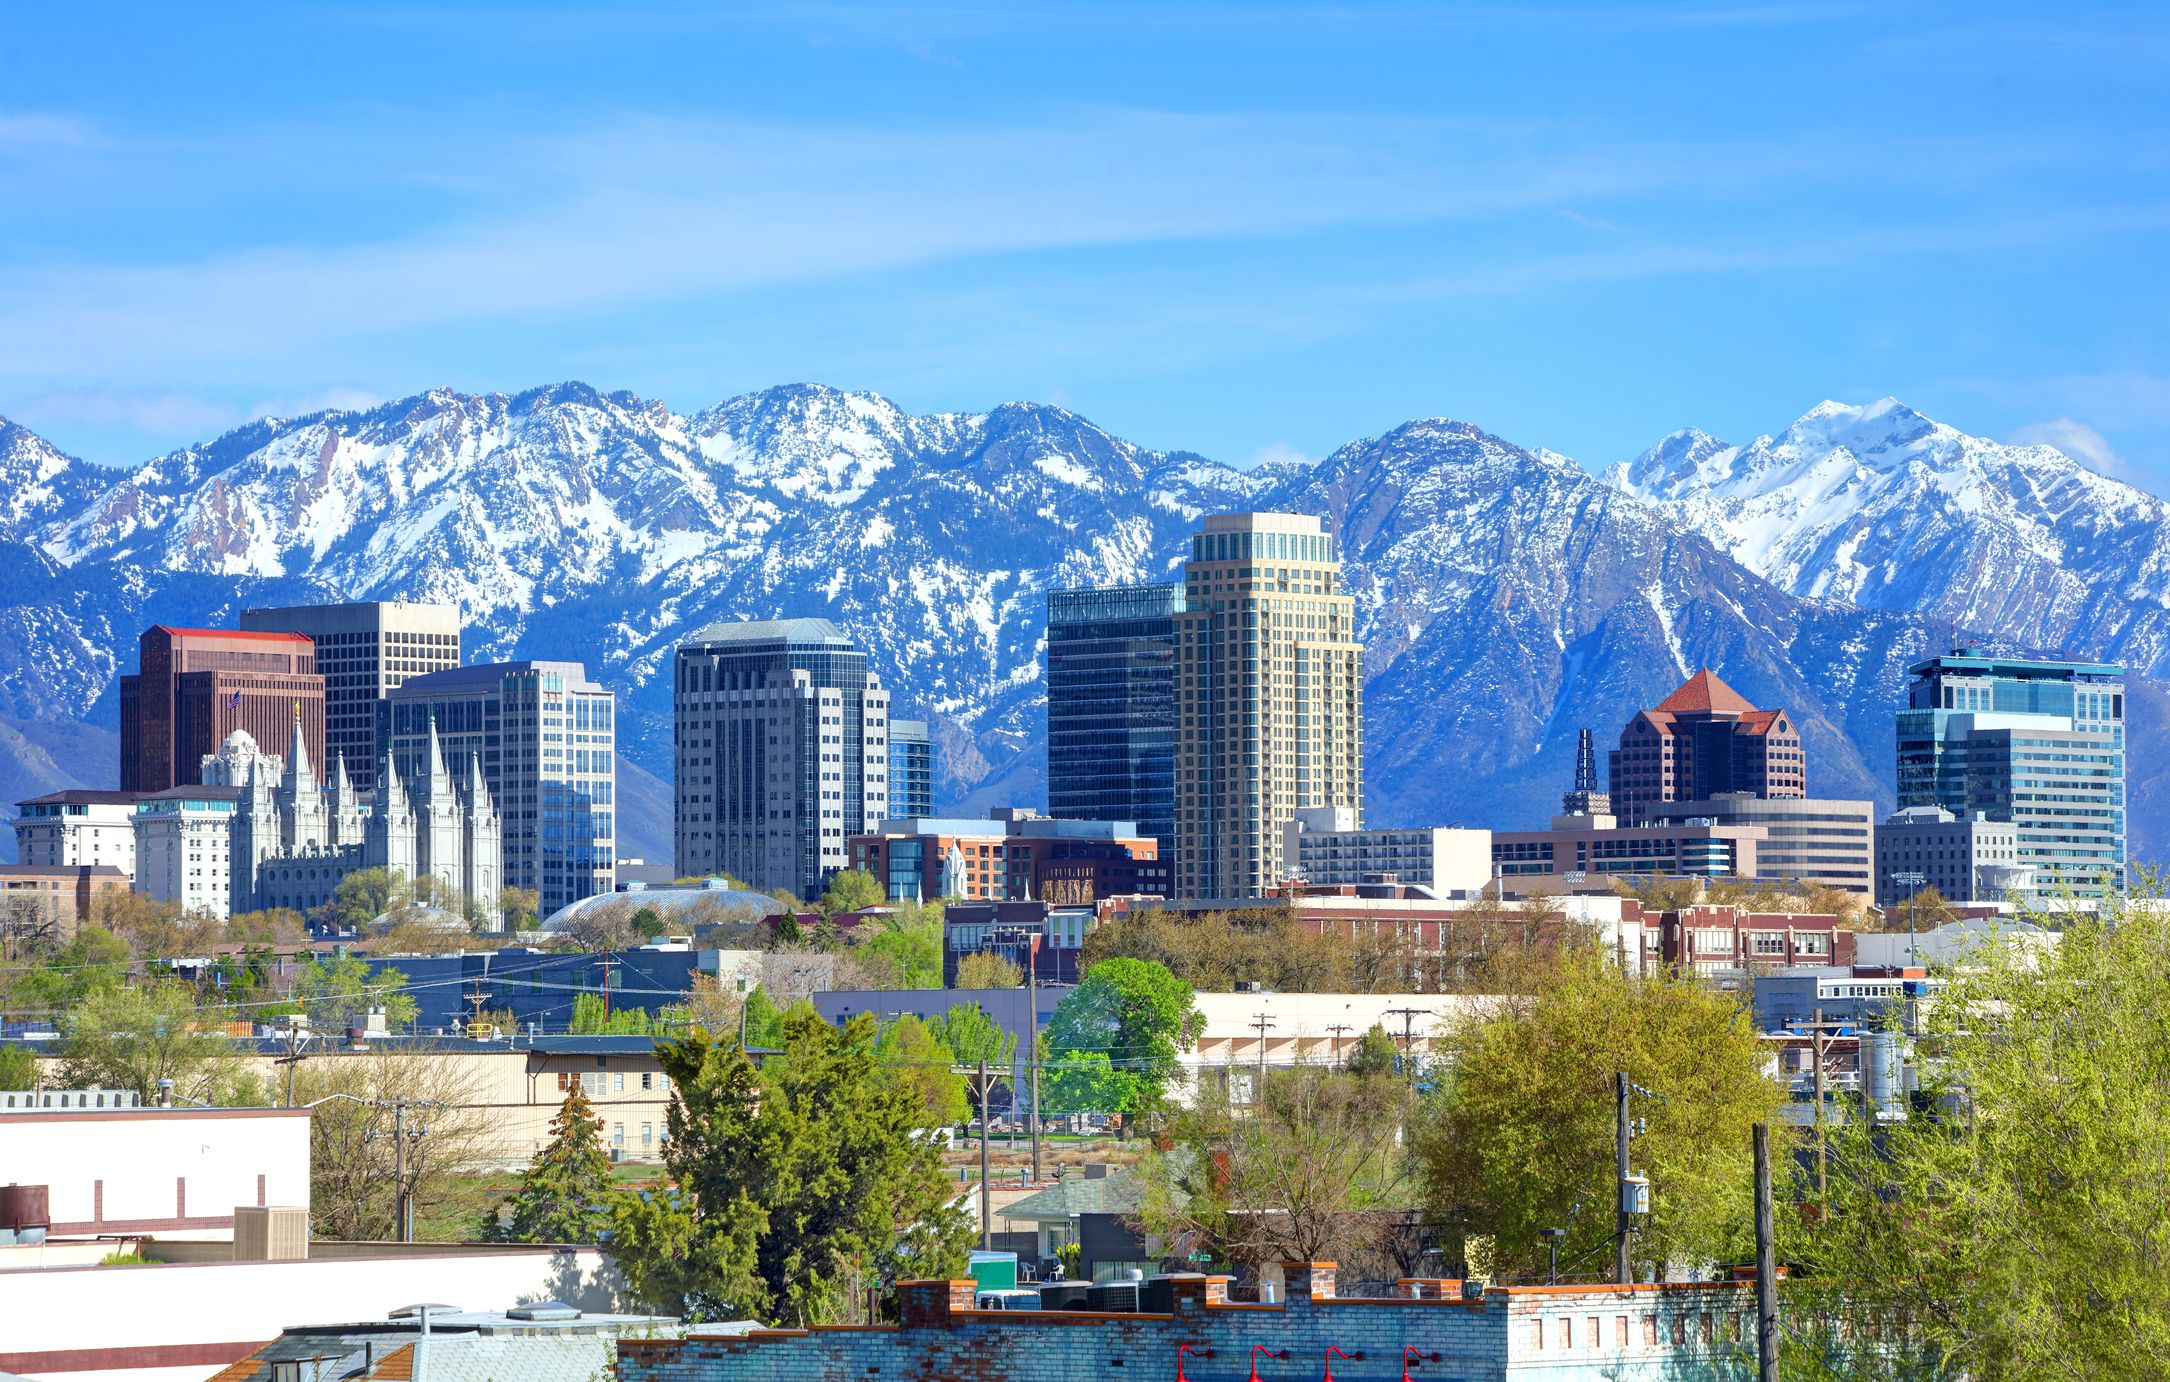 How to Spend 48 Hours in Salt Lake City